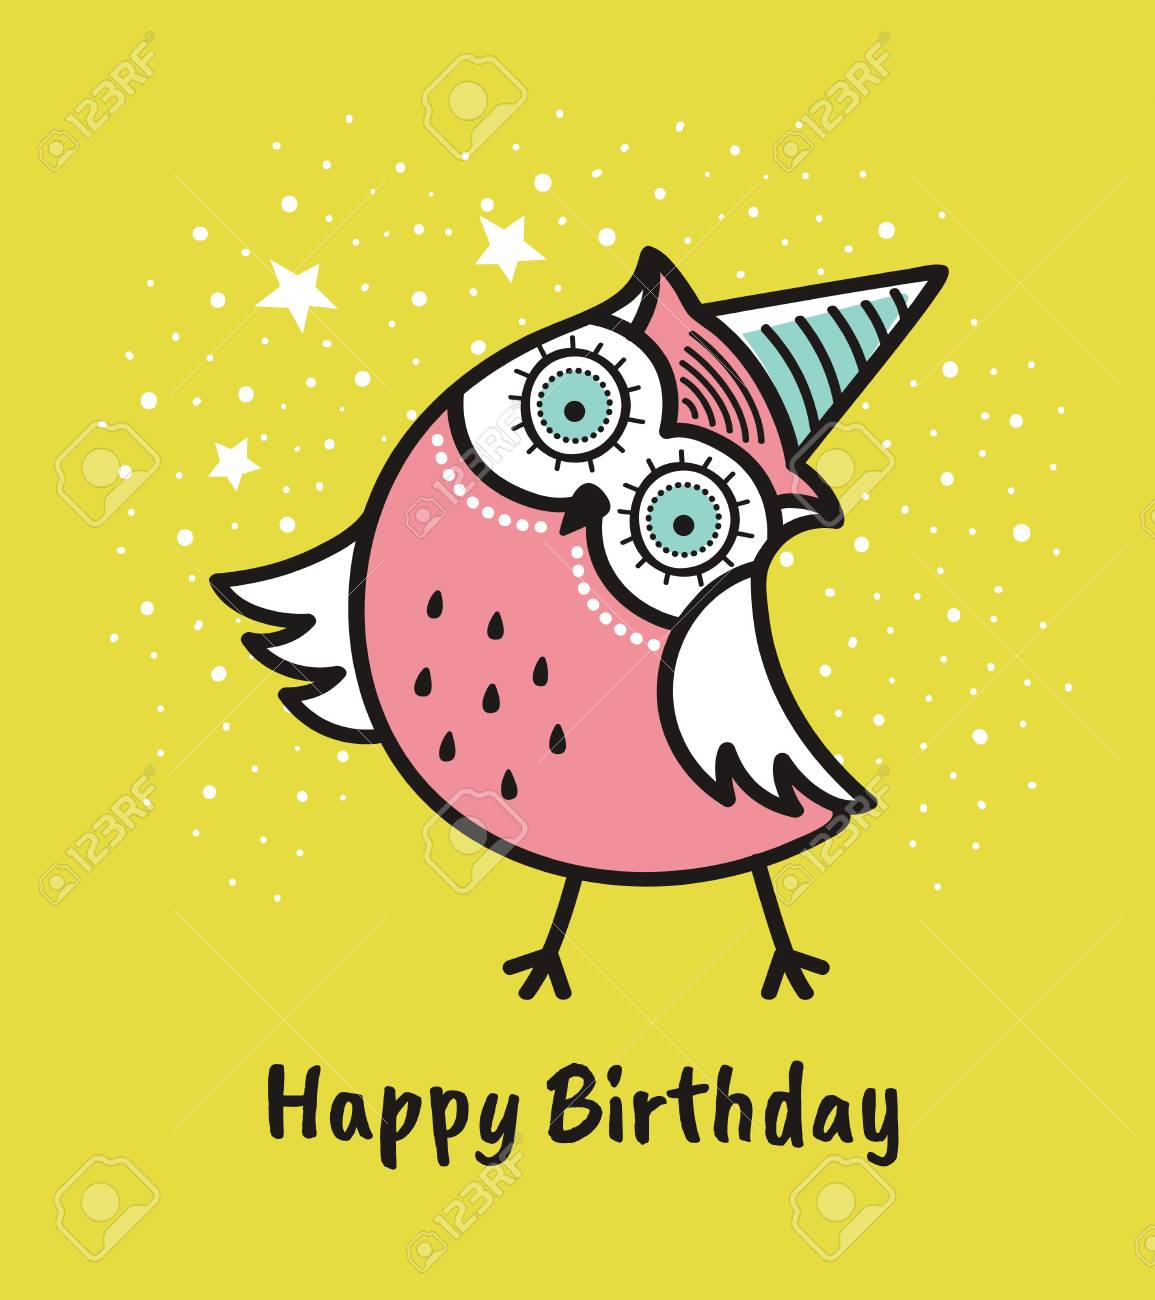 Cute Hand Drawn Owl With Quote Happy Birthday Greeting Card Royalty Free Cliparts Vectors And Stock Illustration Image 92876139